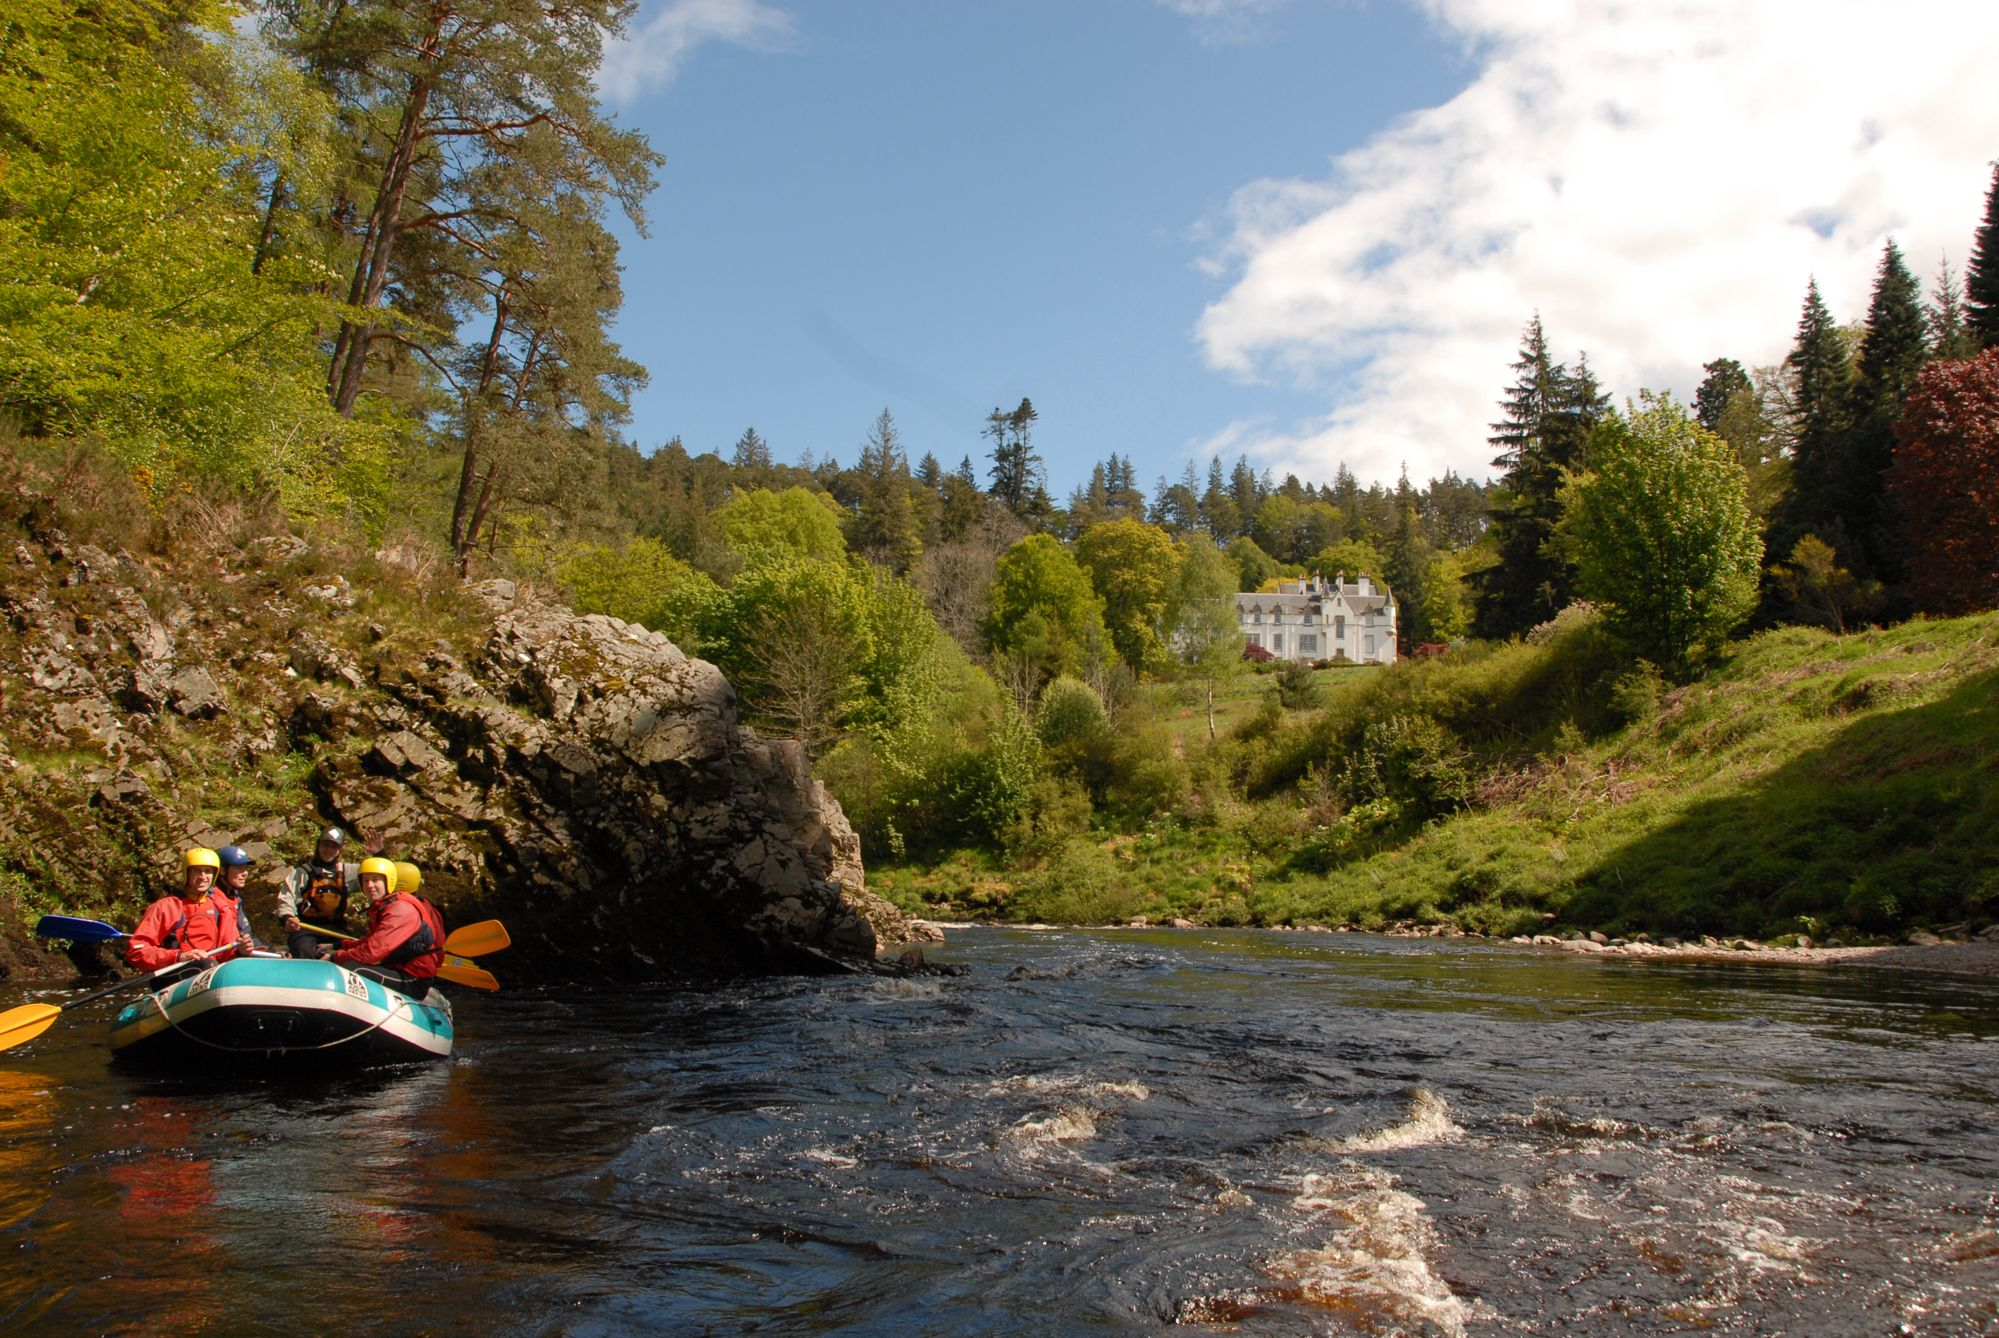 Campsites in Highlands - campsites uk scotland highlands at Cool Camping